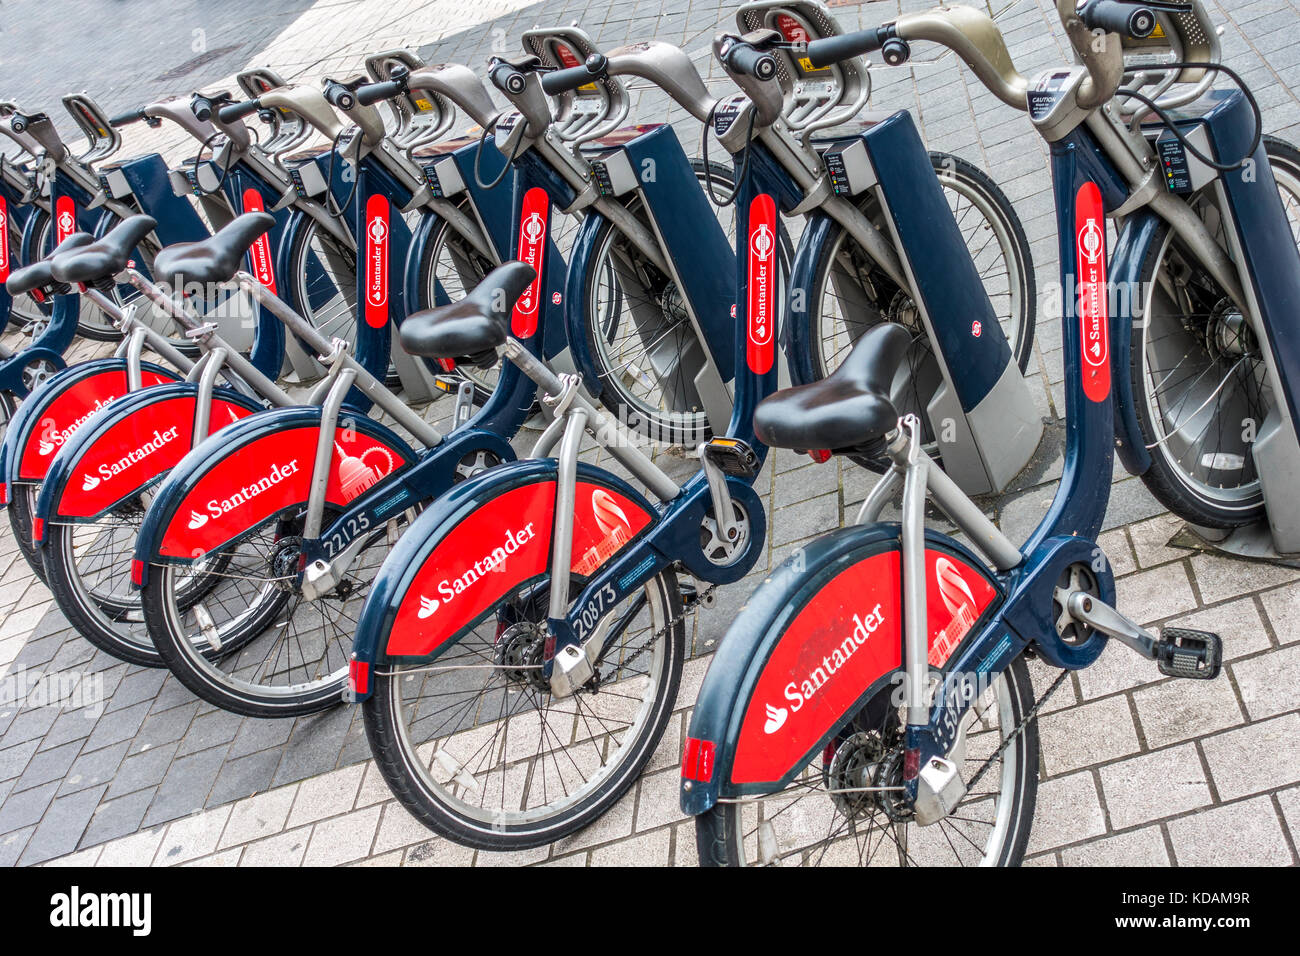 Transport for London - TFL - a line of parked Santander pay-as-you-go cycles, at a docking station in South Kensington, - Stock Image